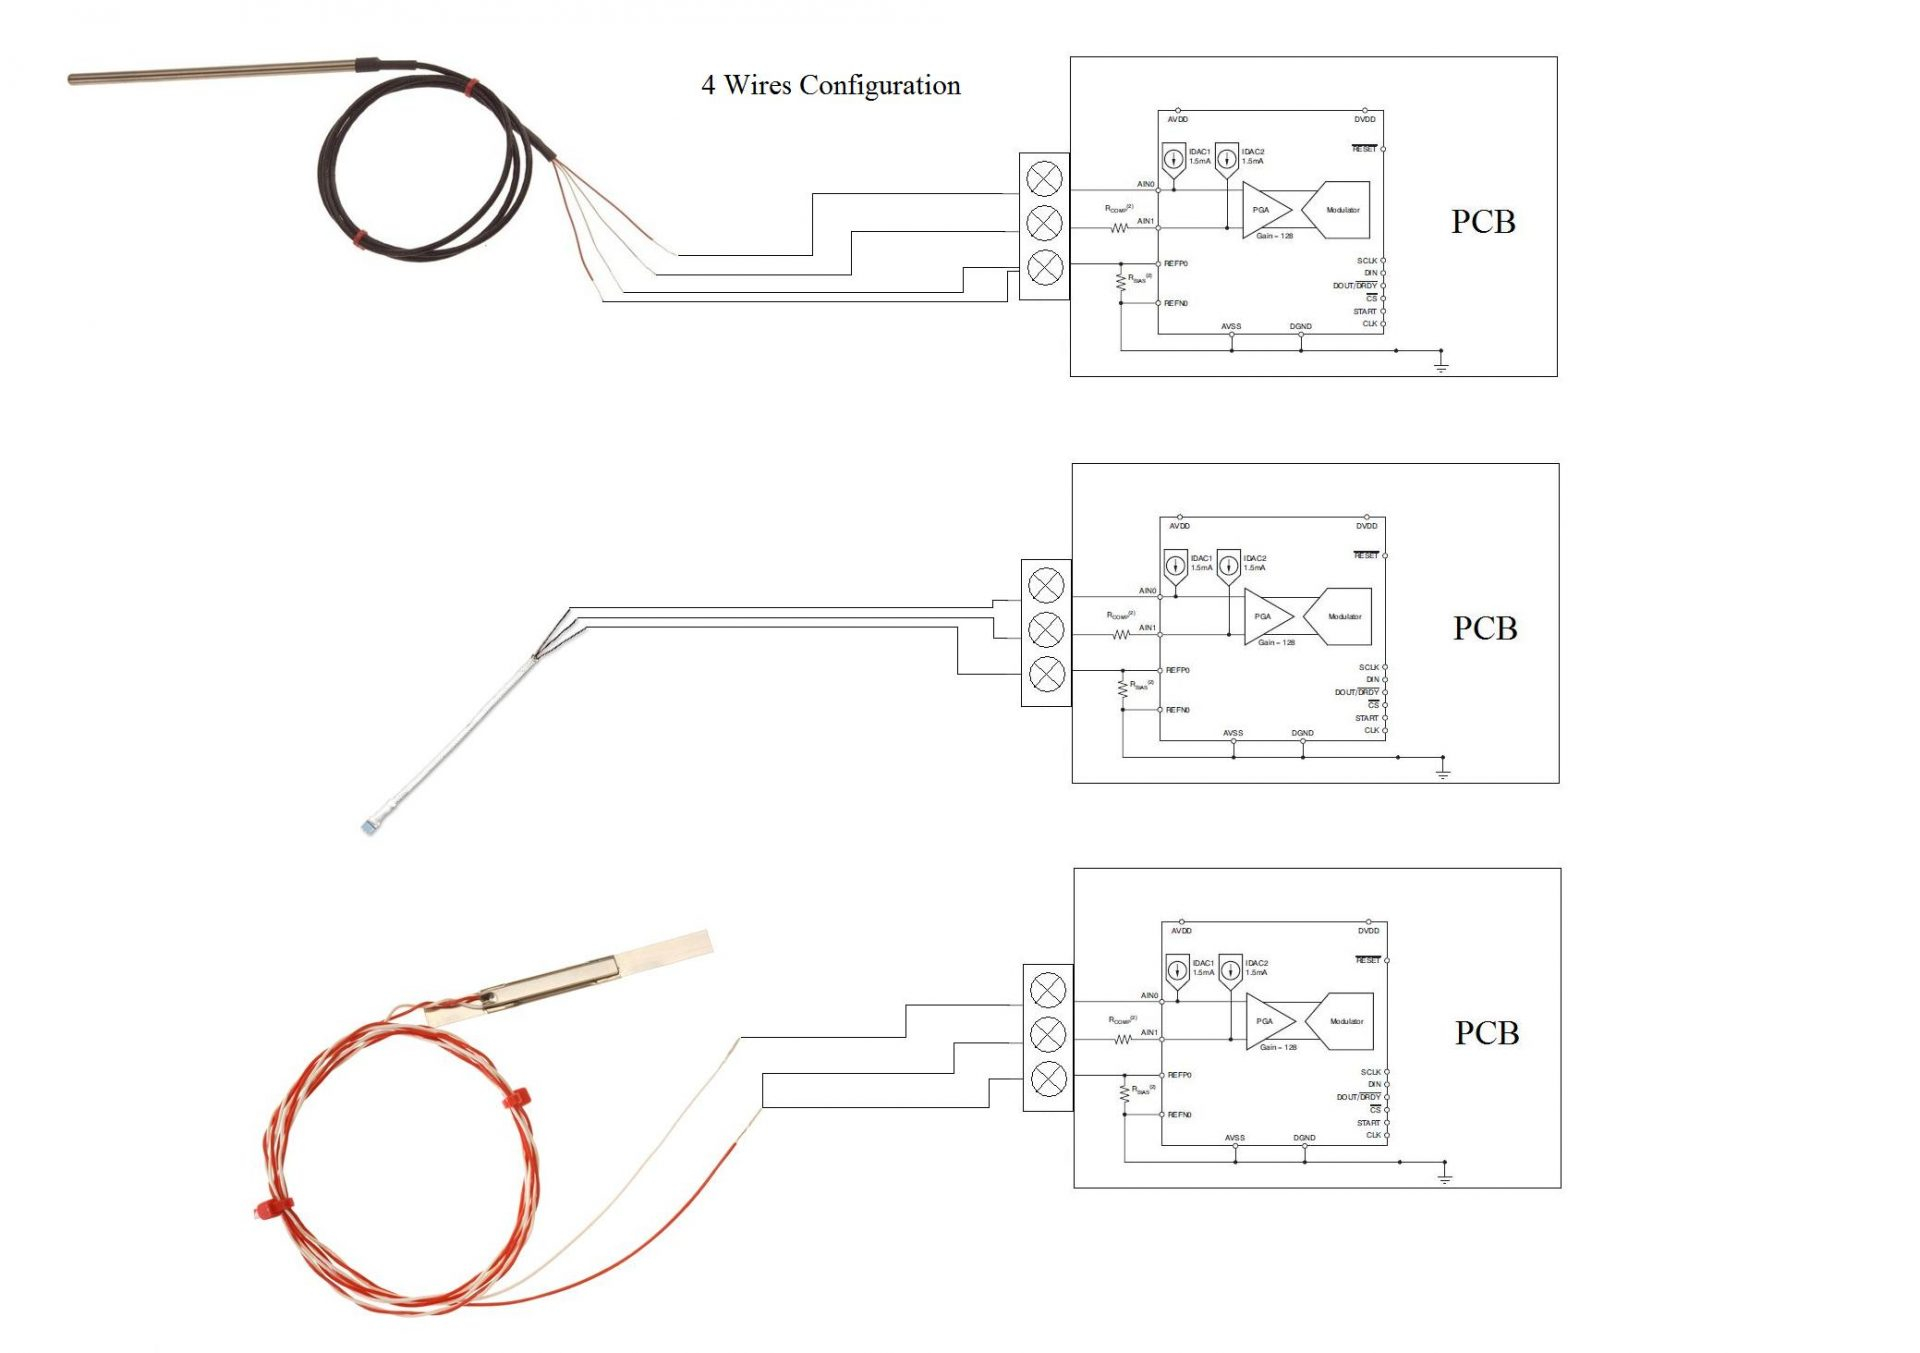 hight resolution of pt100 sensor wiring diagram thermocouple wiring diagram unique best 4 wire thermocouple gallery electrical circuit